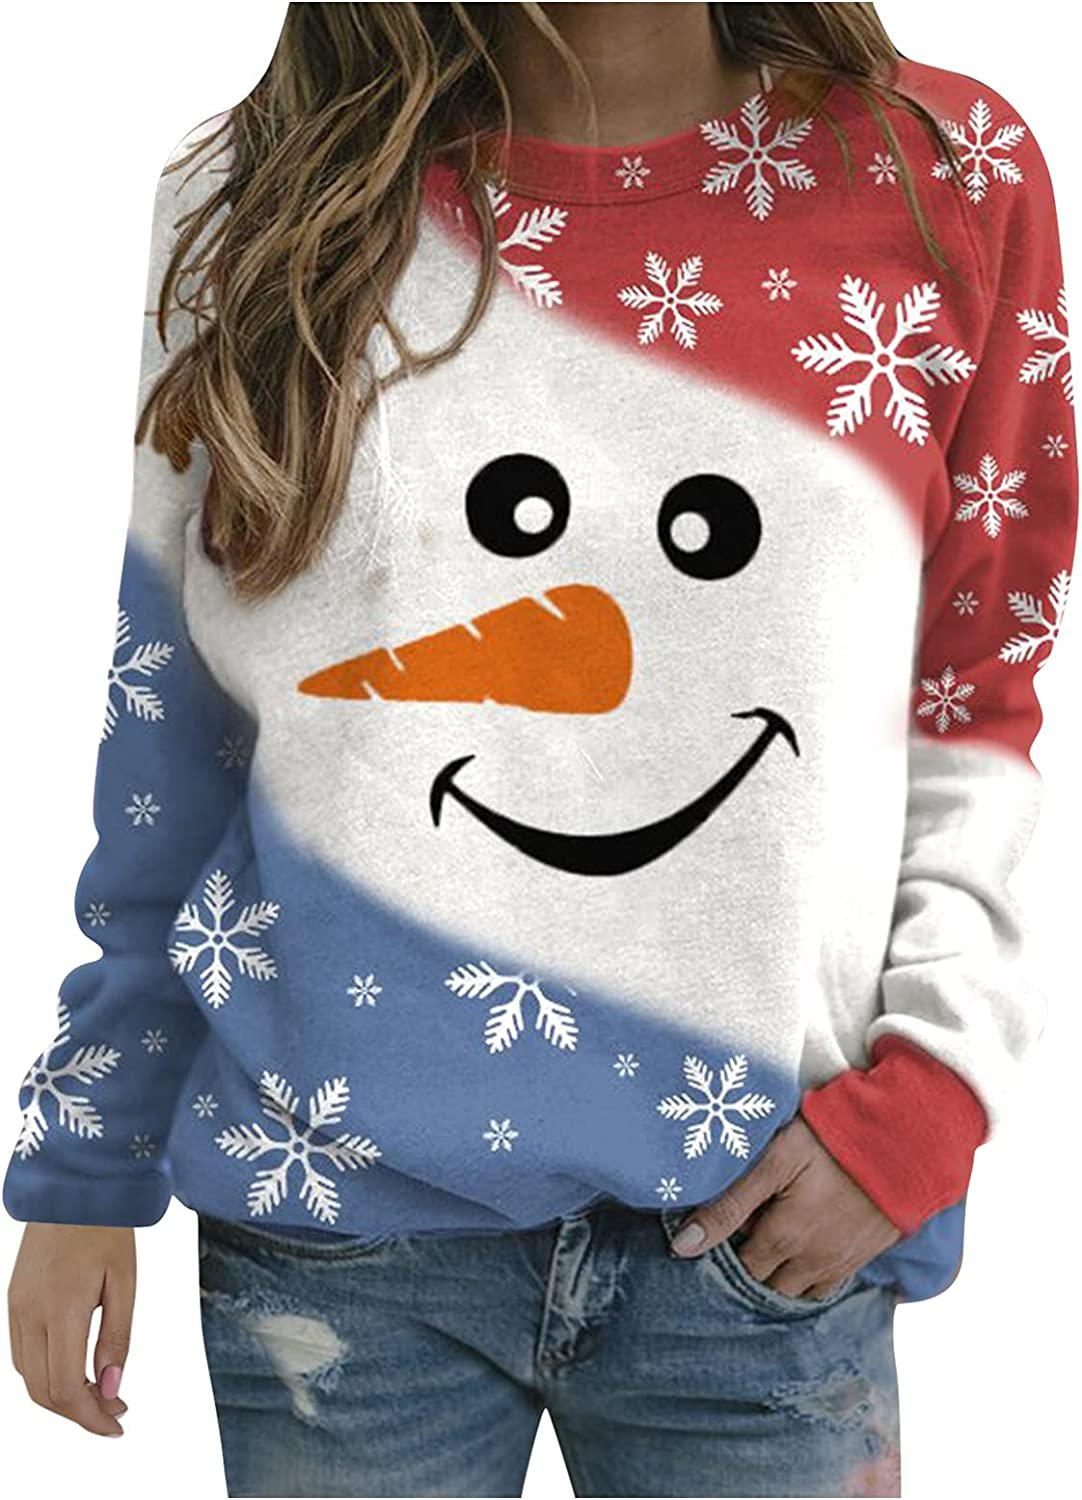 Christmas Sweaters for Women Crewneck Trendy Cute Snowman Graphic Long Sleeve Shirts Loose Fit Comfy Plus Size Blouses